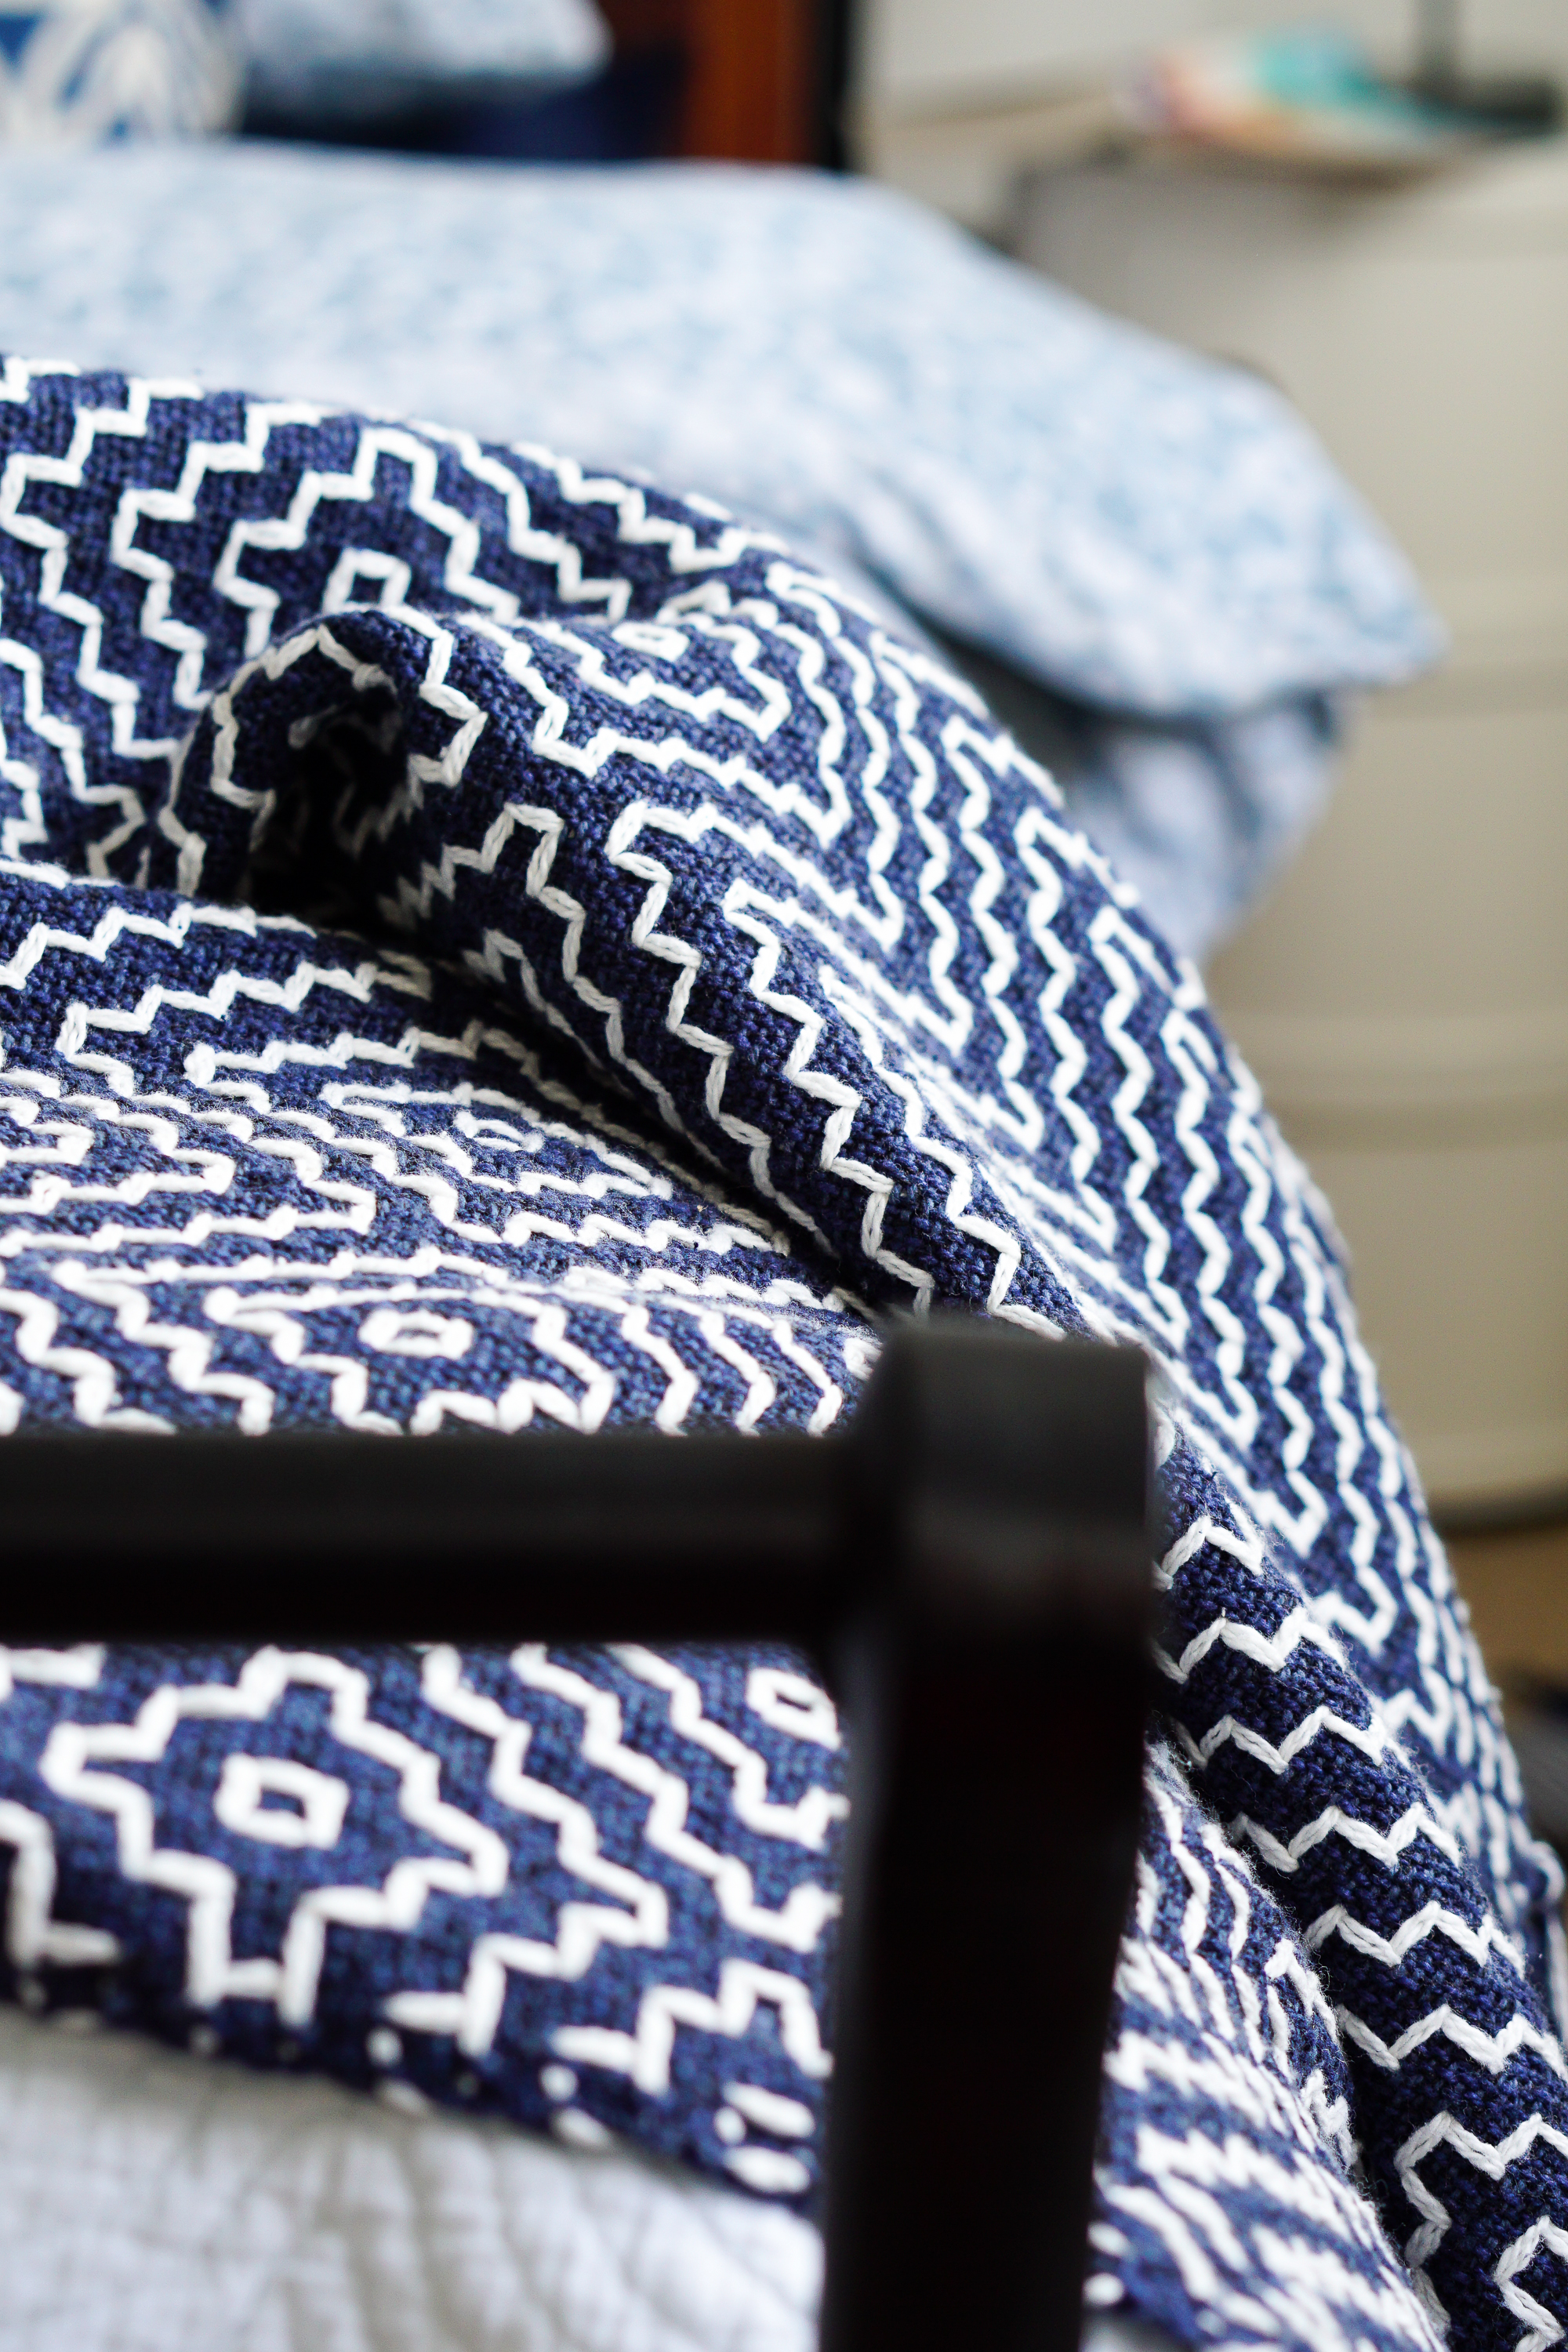 Another blanket? Just what we need! Yes, we do! And here are five ways to use it.